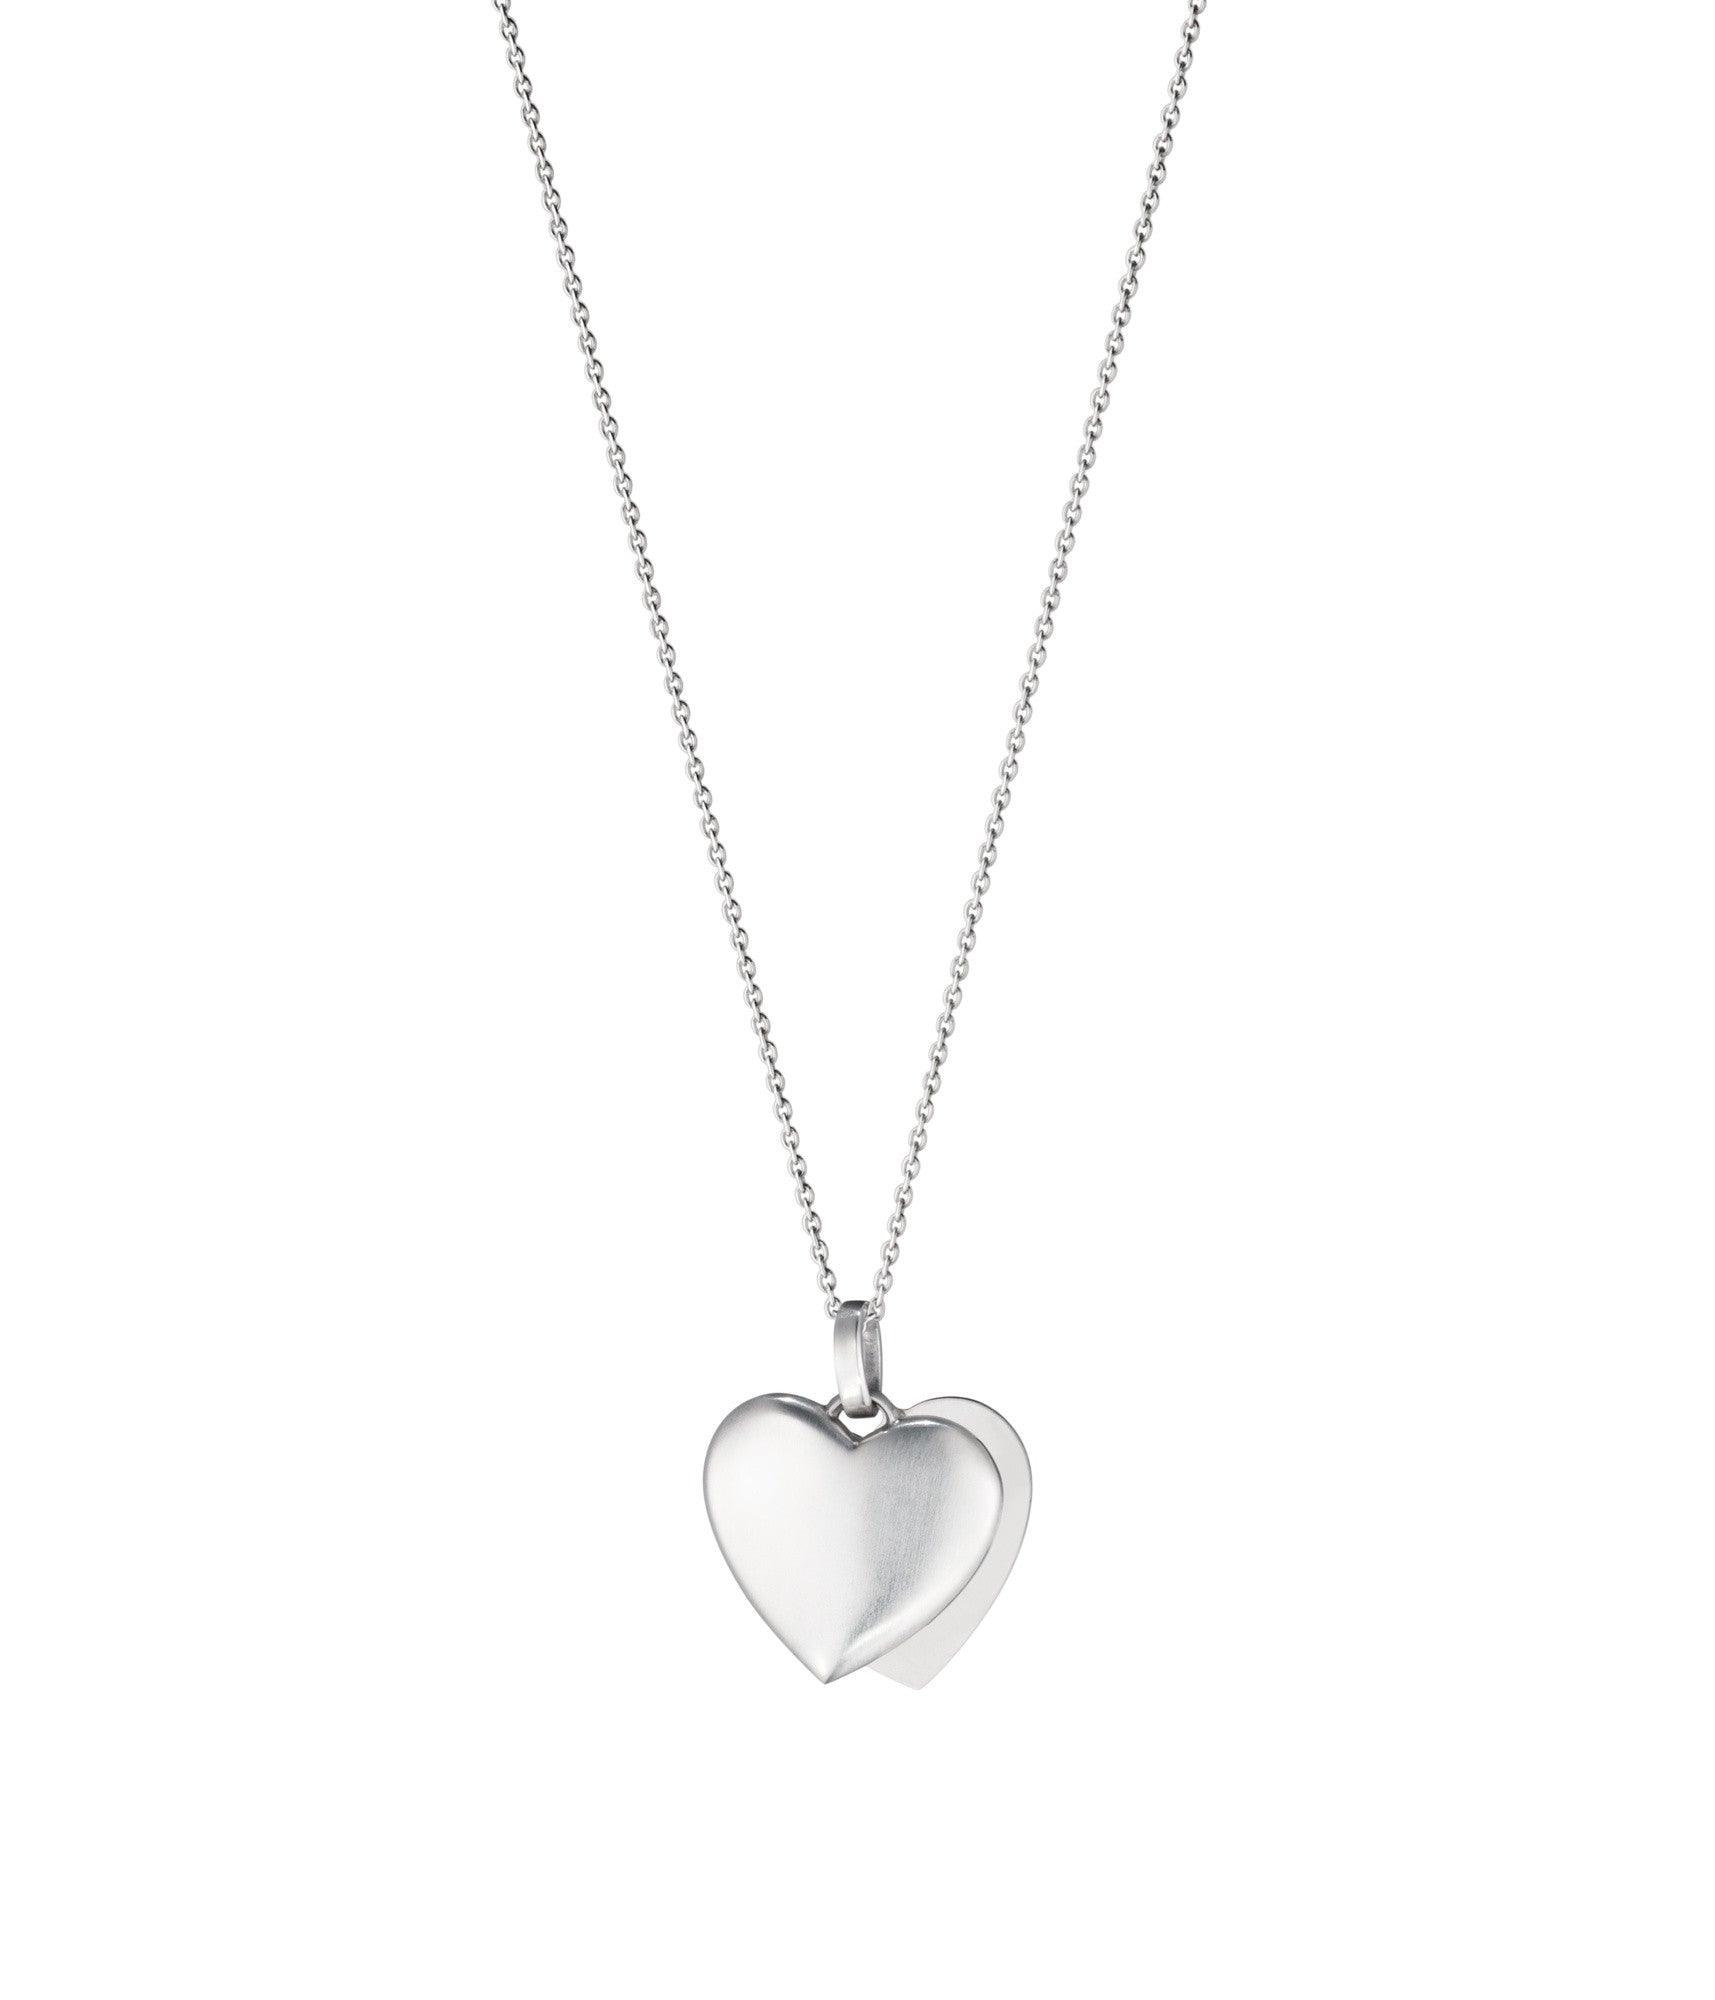 Georg jensen sterling silver double heart necklace d 3536361 c w georg jensen sterling silver double heart necklace d aloadofball Images